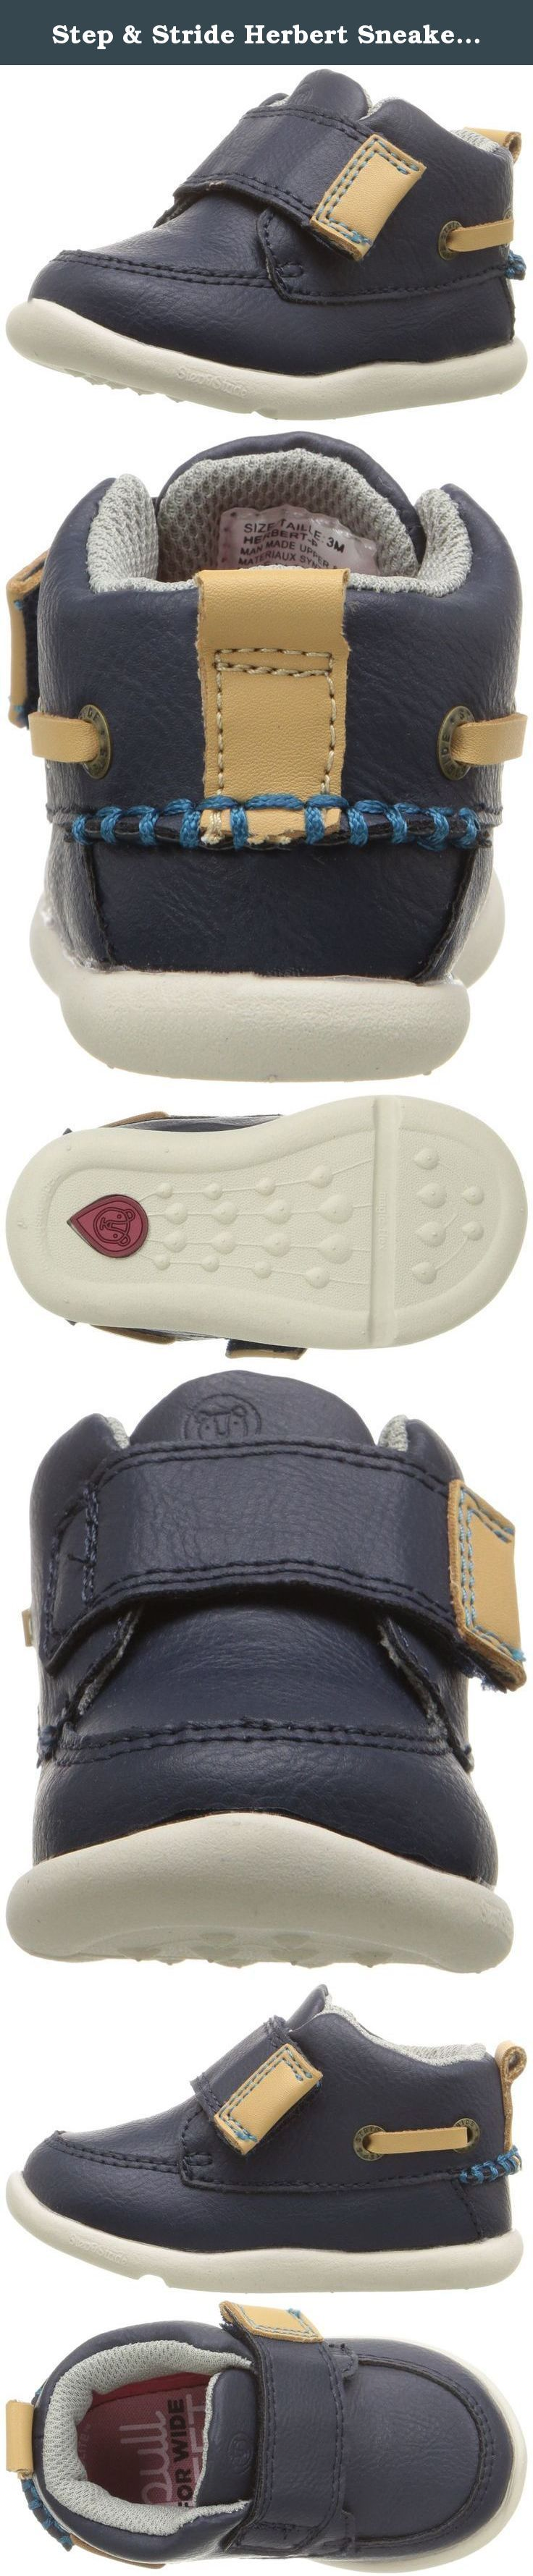 Step & Stride Herbert Sneaker (Infant/Toddler), Navy, 3 M US Infant. We've added a little extra height (and style) to the classic boat shoe. Perfect for the playground or the yacht club, these adorable little boat boots feature sturdy construction, timeless styling and hand-stitch details for a more grown-up look that both you and your little one will love.